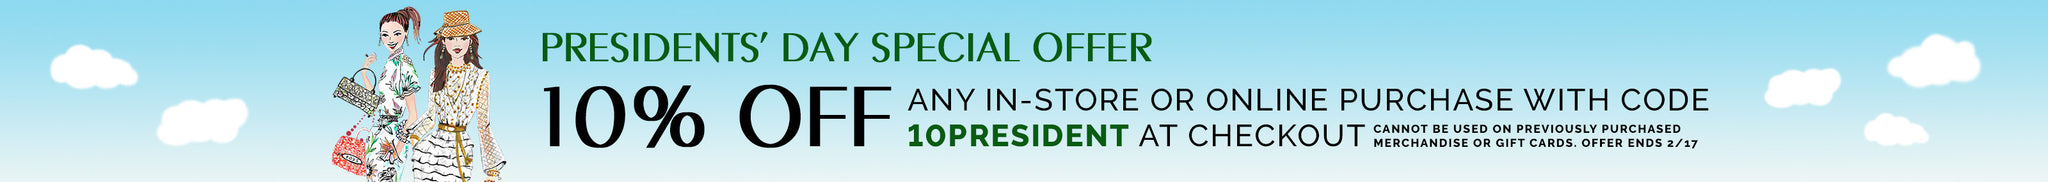 Presidents' Day Special Offer. 10% off any in-store or online purchase. Use code 10PRESIDENT at checkout.